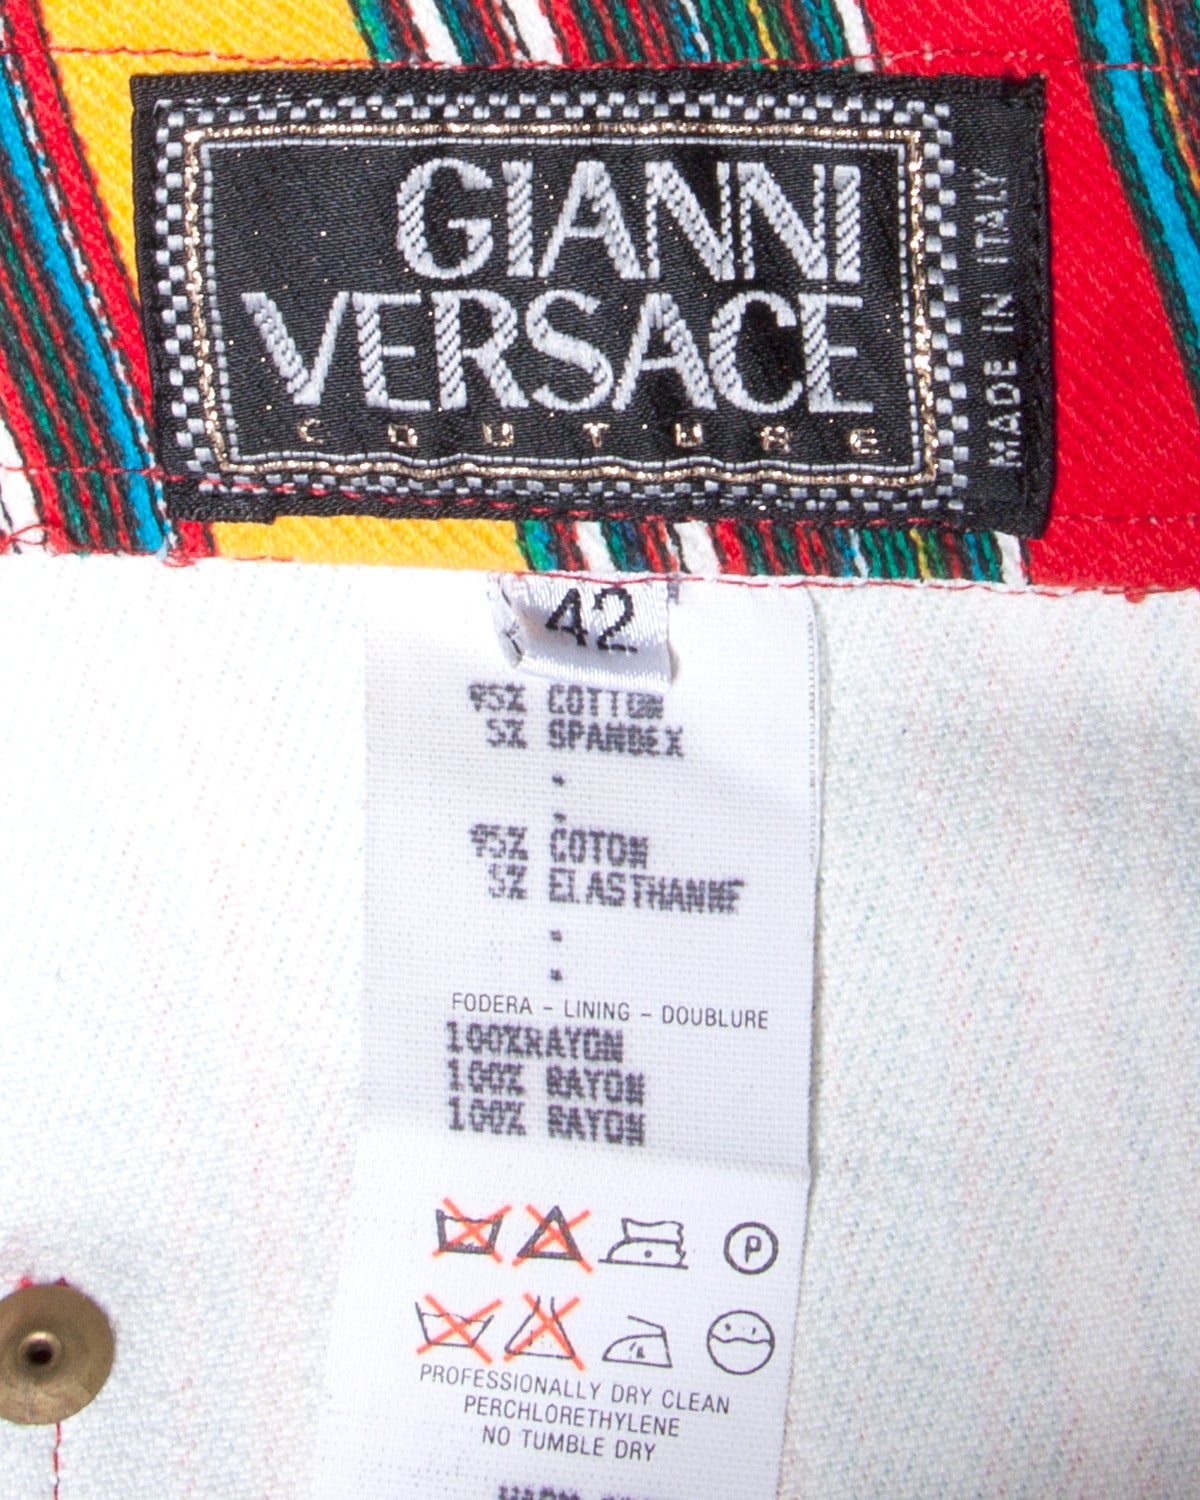 1993 Unworn Gianni Versace Couture Vintage Shorts as Worn by Naomi Campbell 6